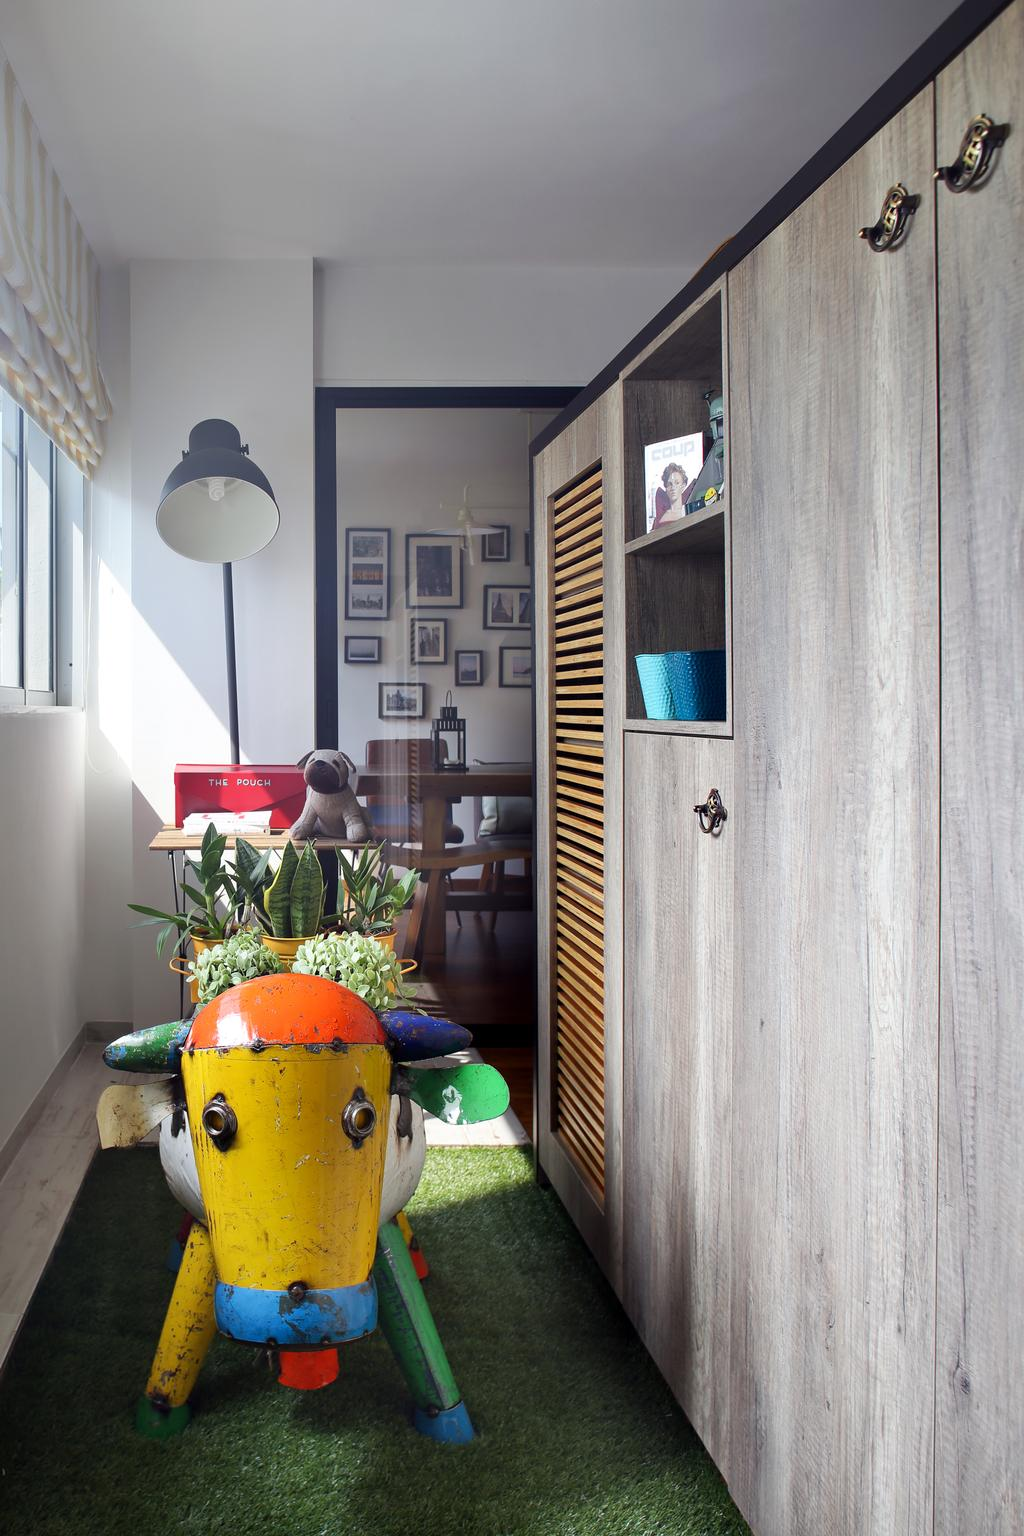 Eclectic, HDB, Marine Drive (Block 75), Interior Designer, The Scientist, Cabinet, Cabinetry, Dark Wood, Carpet, Artificial Grass Carpet, Green Carpet, Home Decor, Standing Lamp, Bright, Flora, Jar, Plant, Potted Plant, Pottery, Vase, Cactus